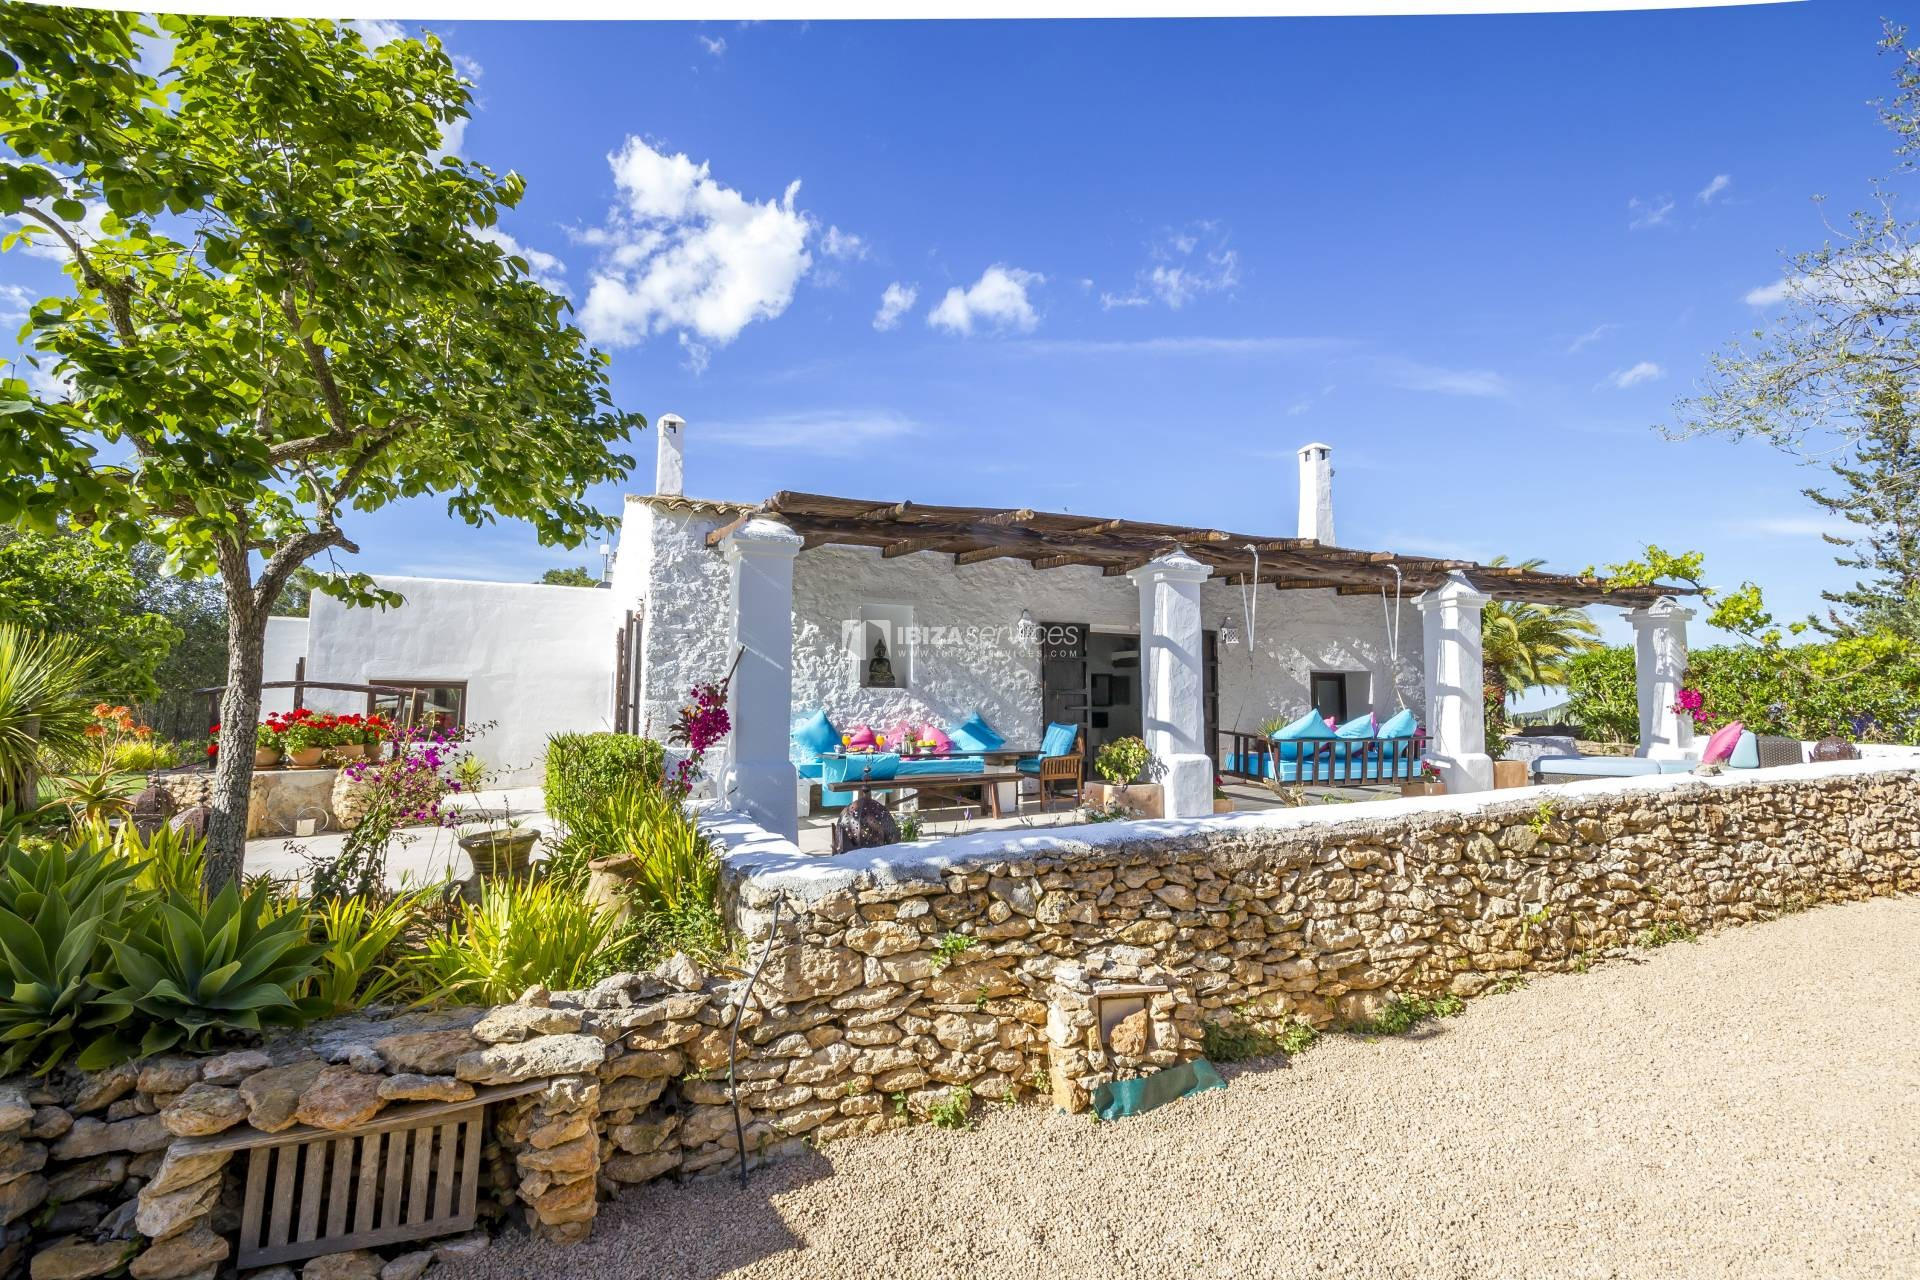 Beautifully finca located between St gertudis and San lorenzo perspectiva 4